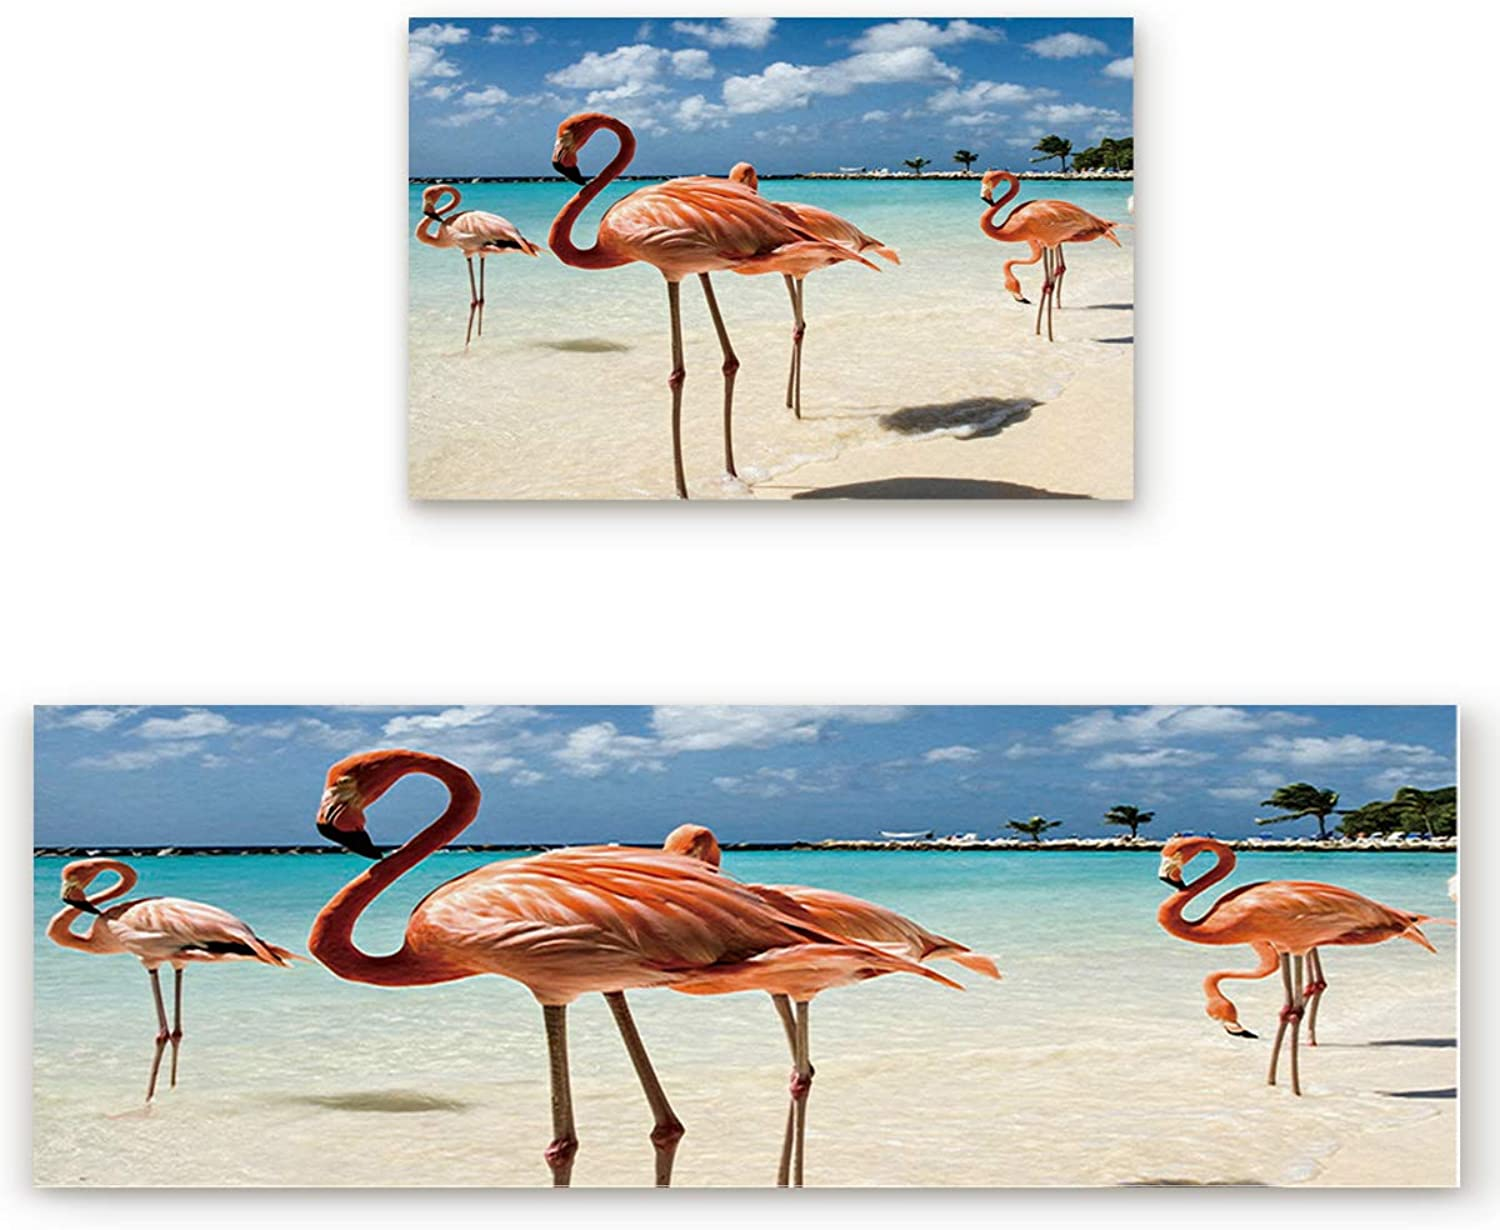 SODIKA 2 Pieces Kitchen Rug Set,Non-Skid Slip Washable Doormat Floor Runner Bathroom Area Rug Carpet,Flamingos on The Tropical Beach (19.7x31.5in+19.7x63 inches)